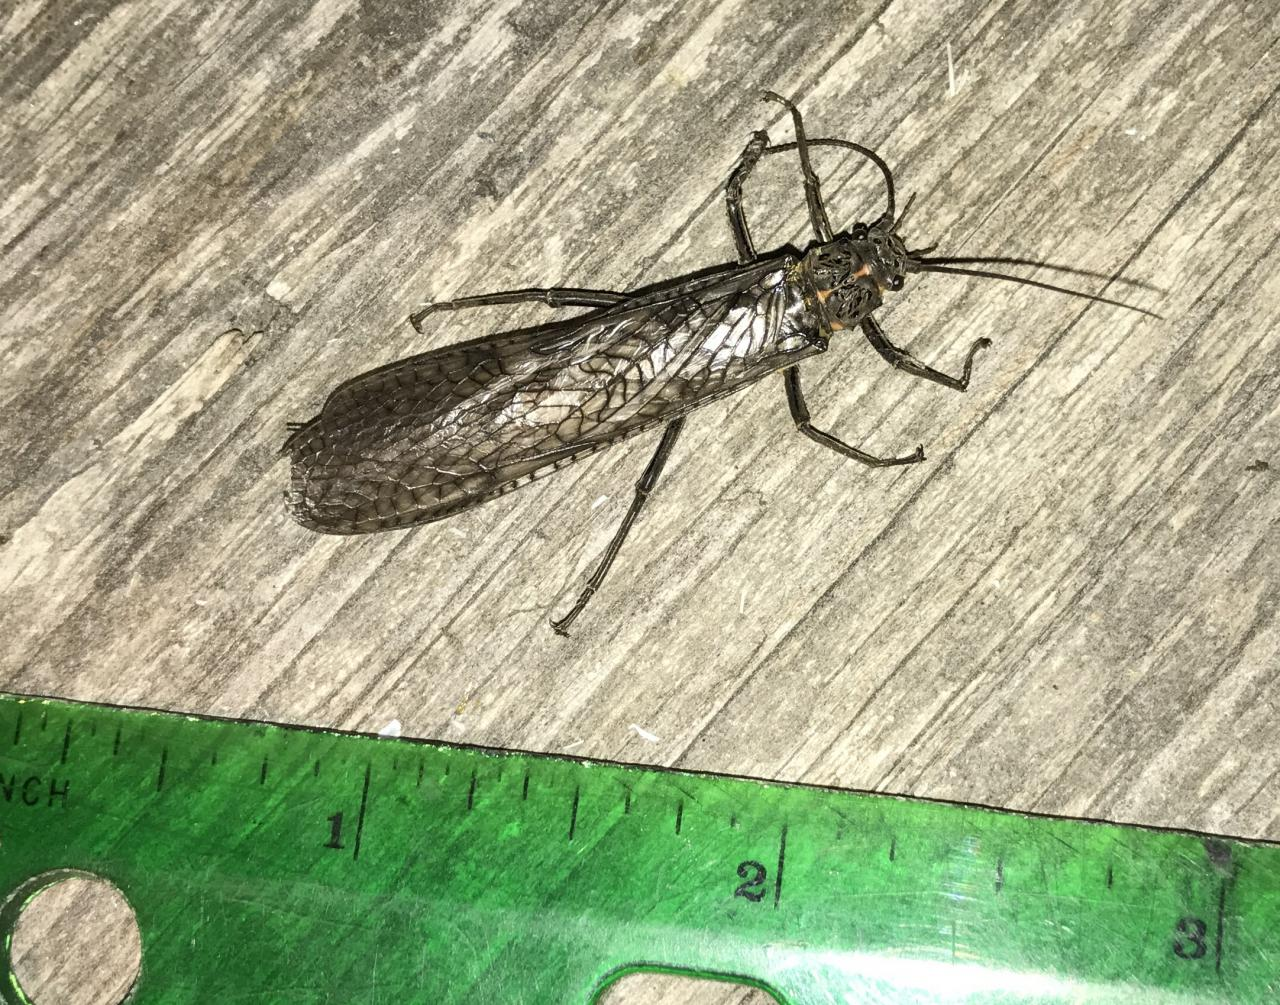 Stoneflies indicate good water quality.